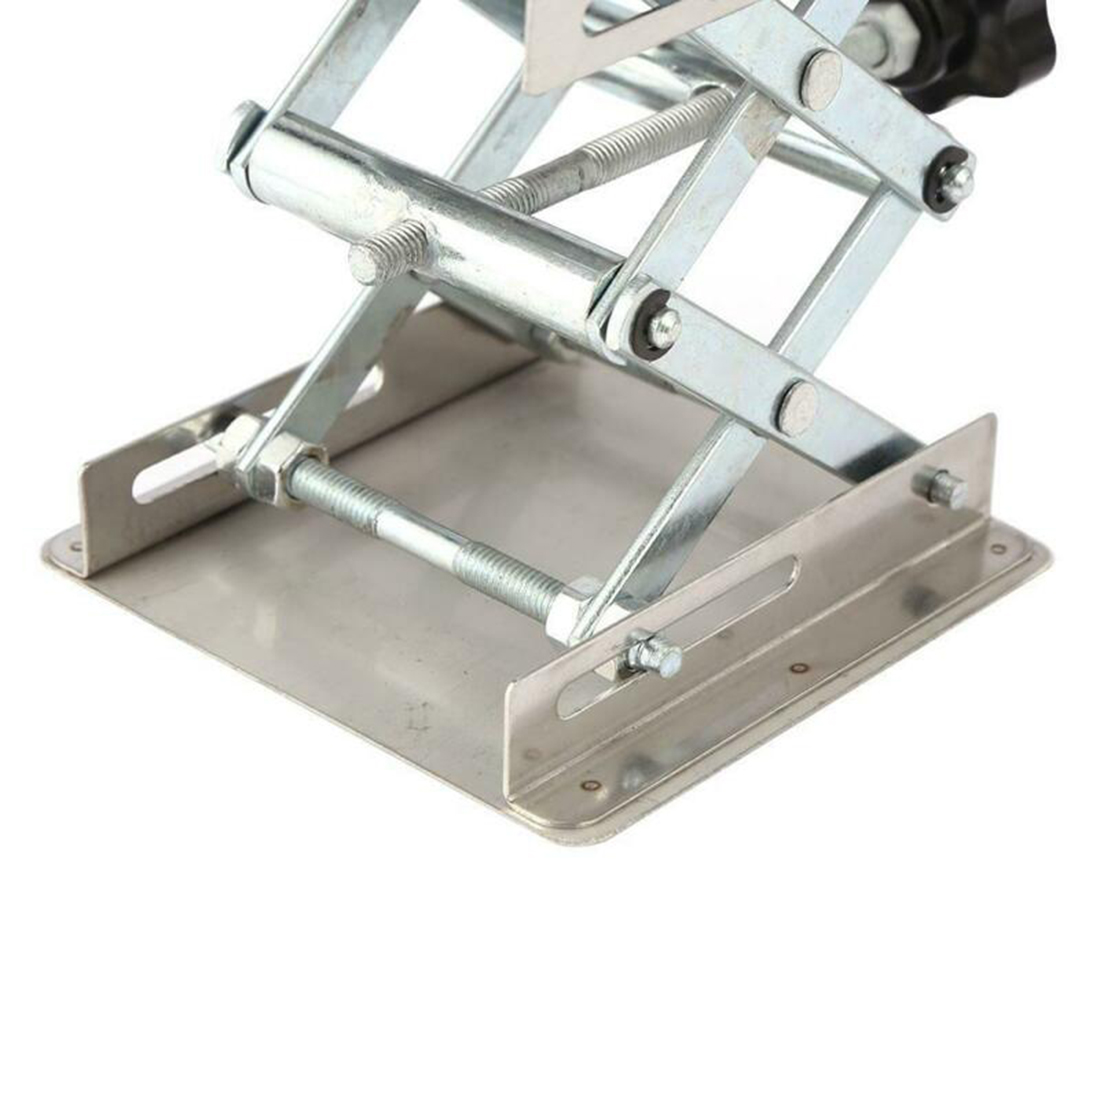 Tool Lift Table Parts Stainless Steel <font><b>Router</b></font> Woodworking <font><b>Lifter</b></font> Engraving image